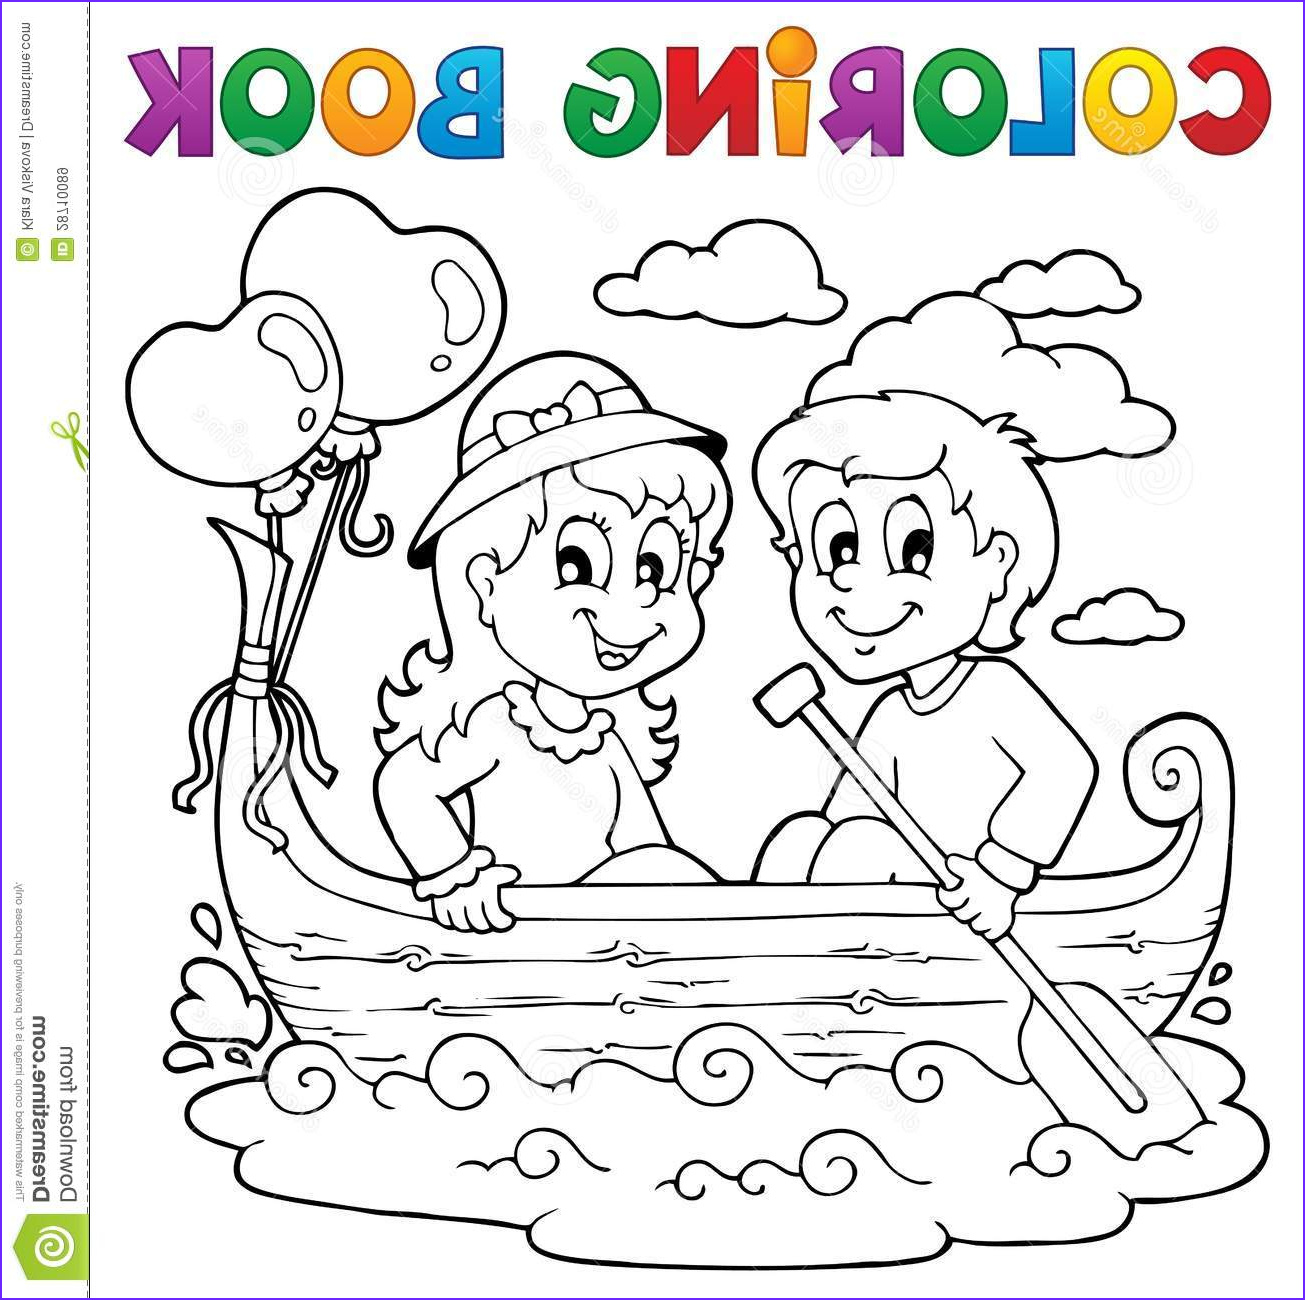 royalty free stock images coloring book love theme image 1 image